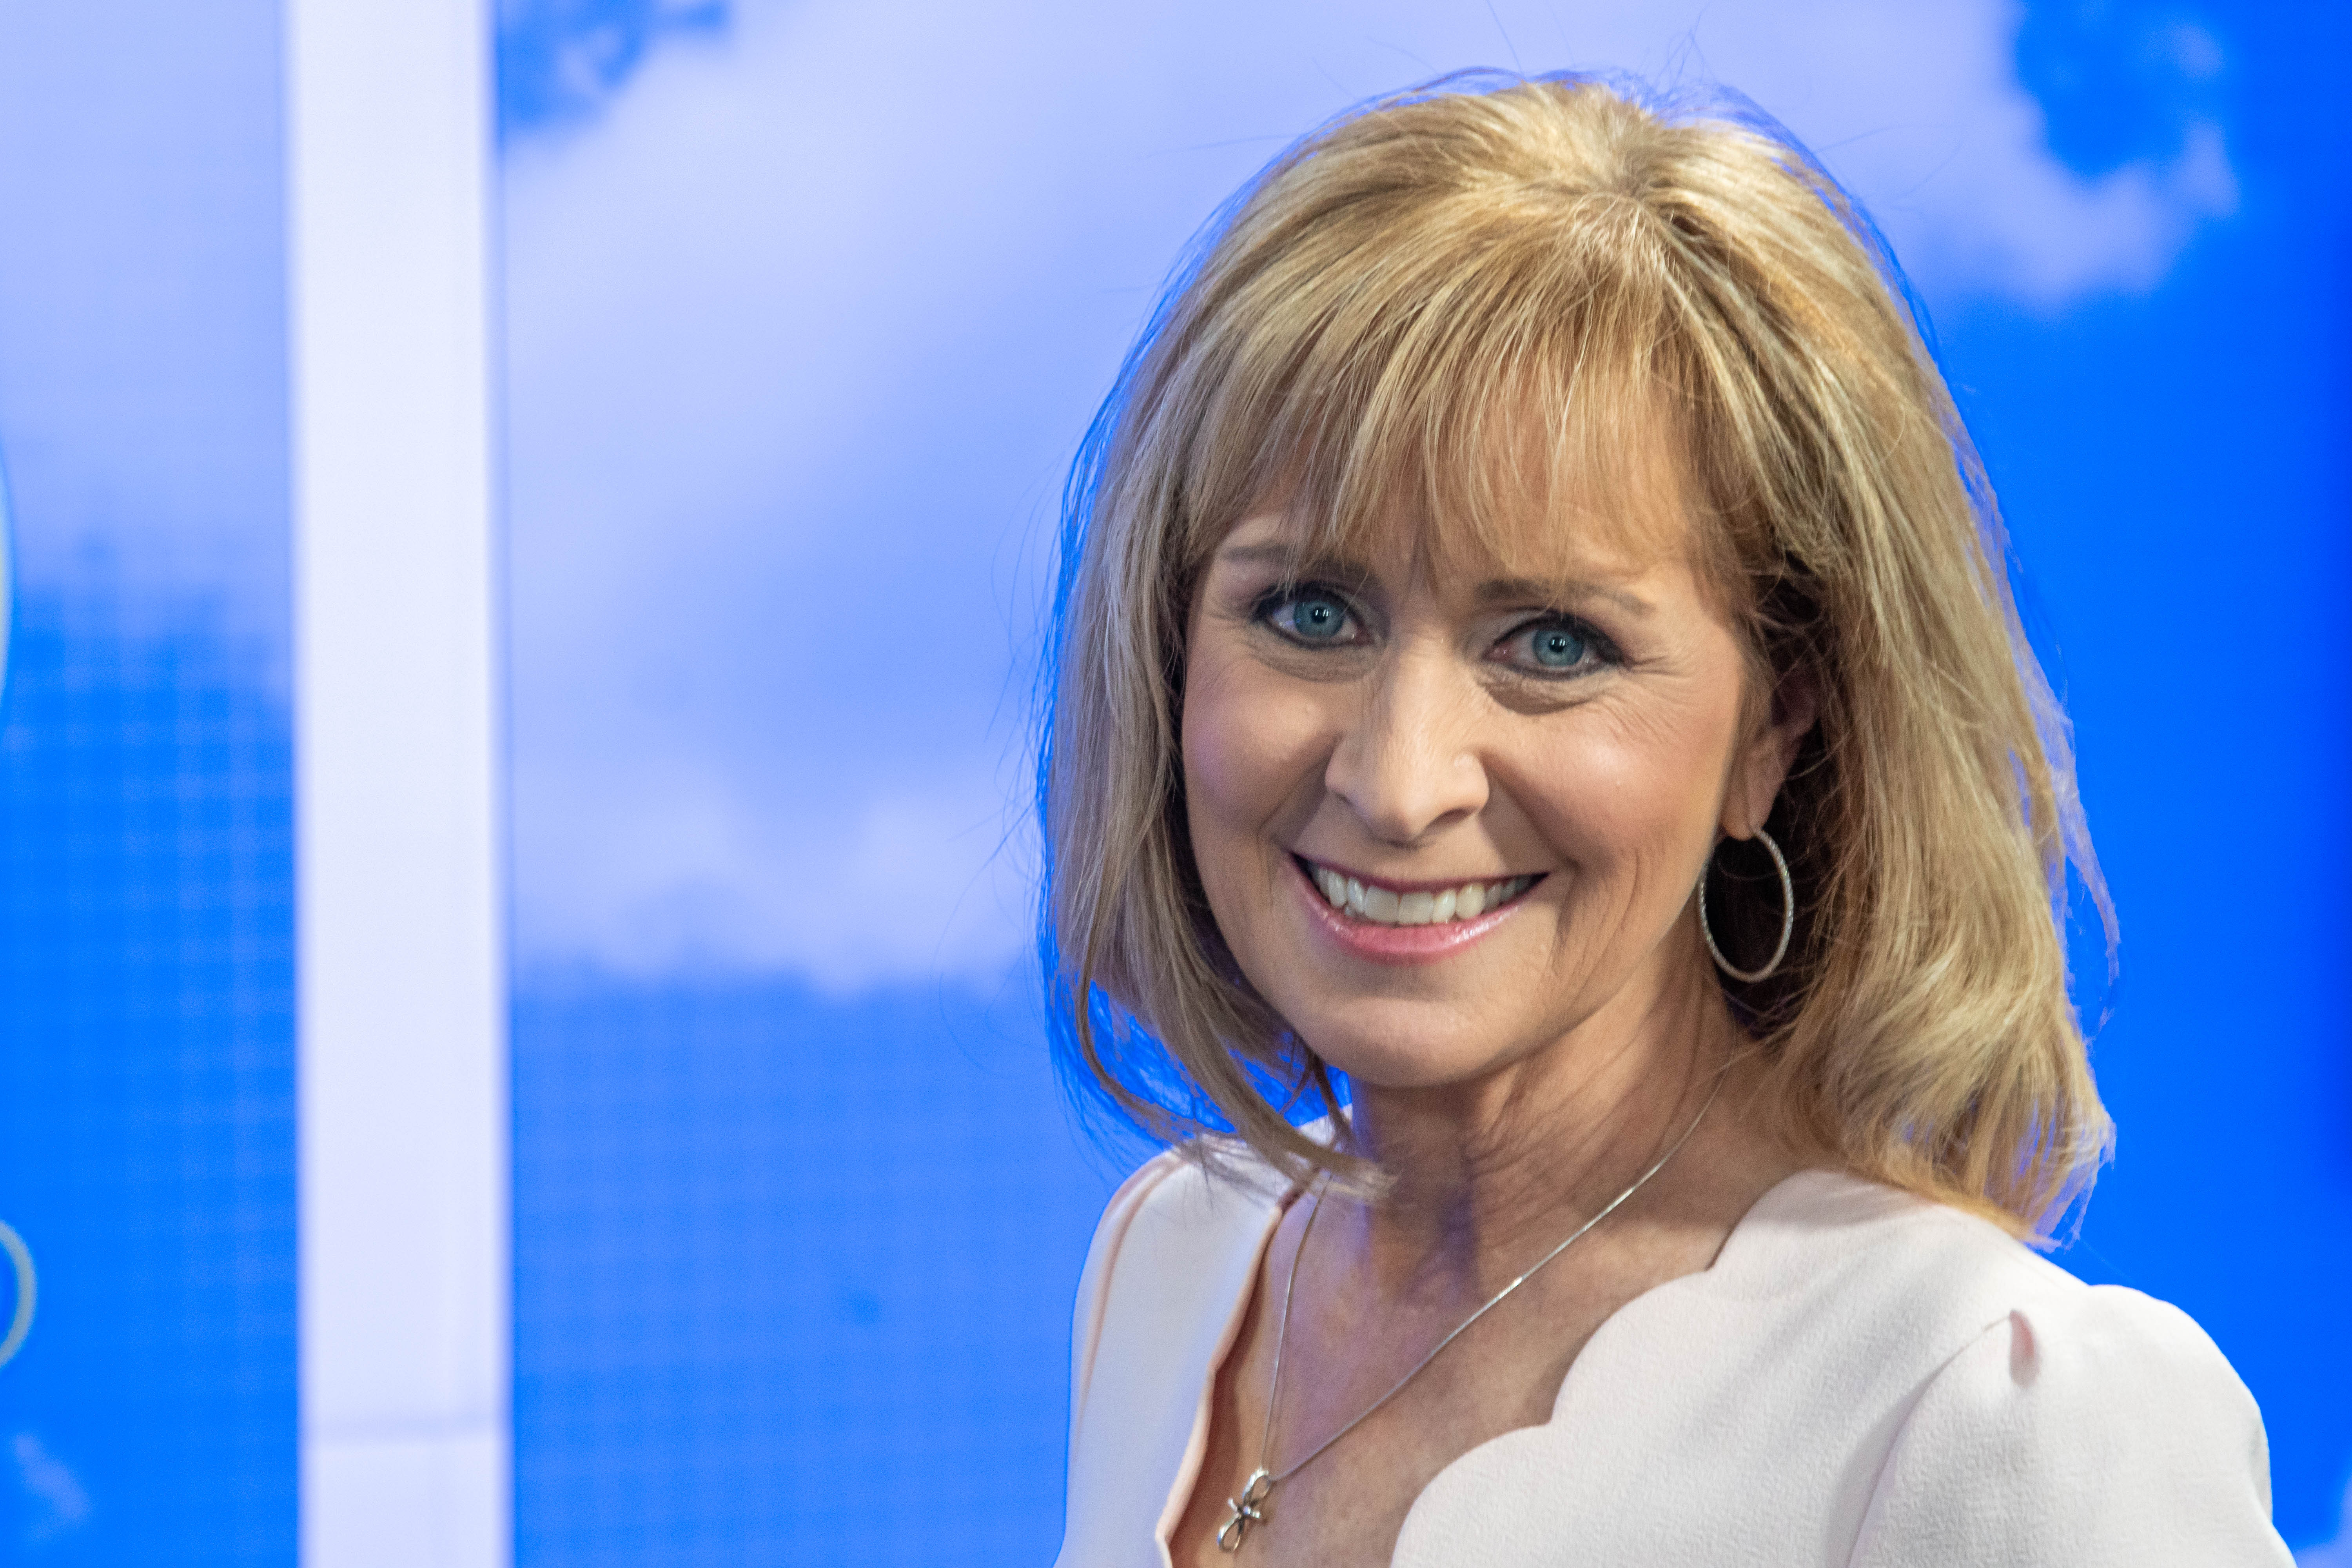 One year after her breast cancer diagnosis ABC-7 Chicago meteorologist Tracy Butler says she wants all women to do the right thing: get an annual mammogram.